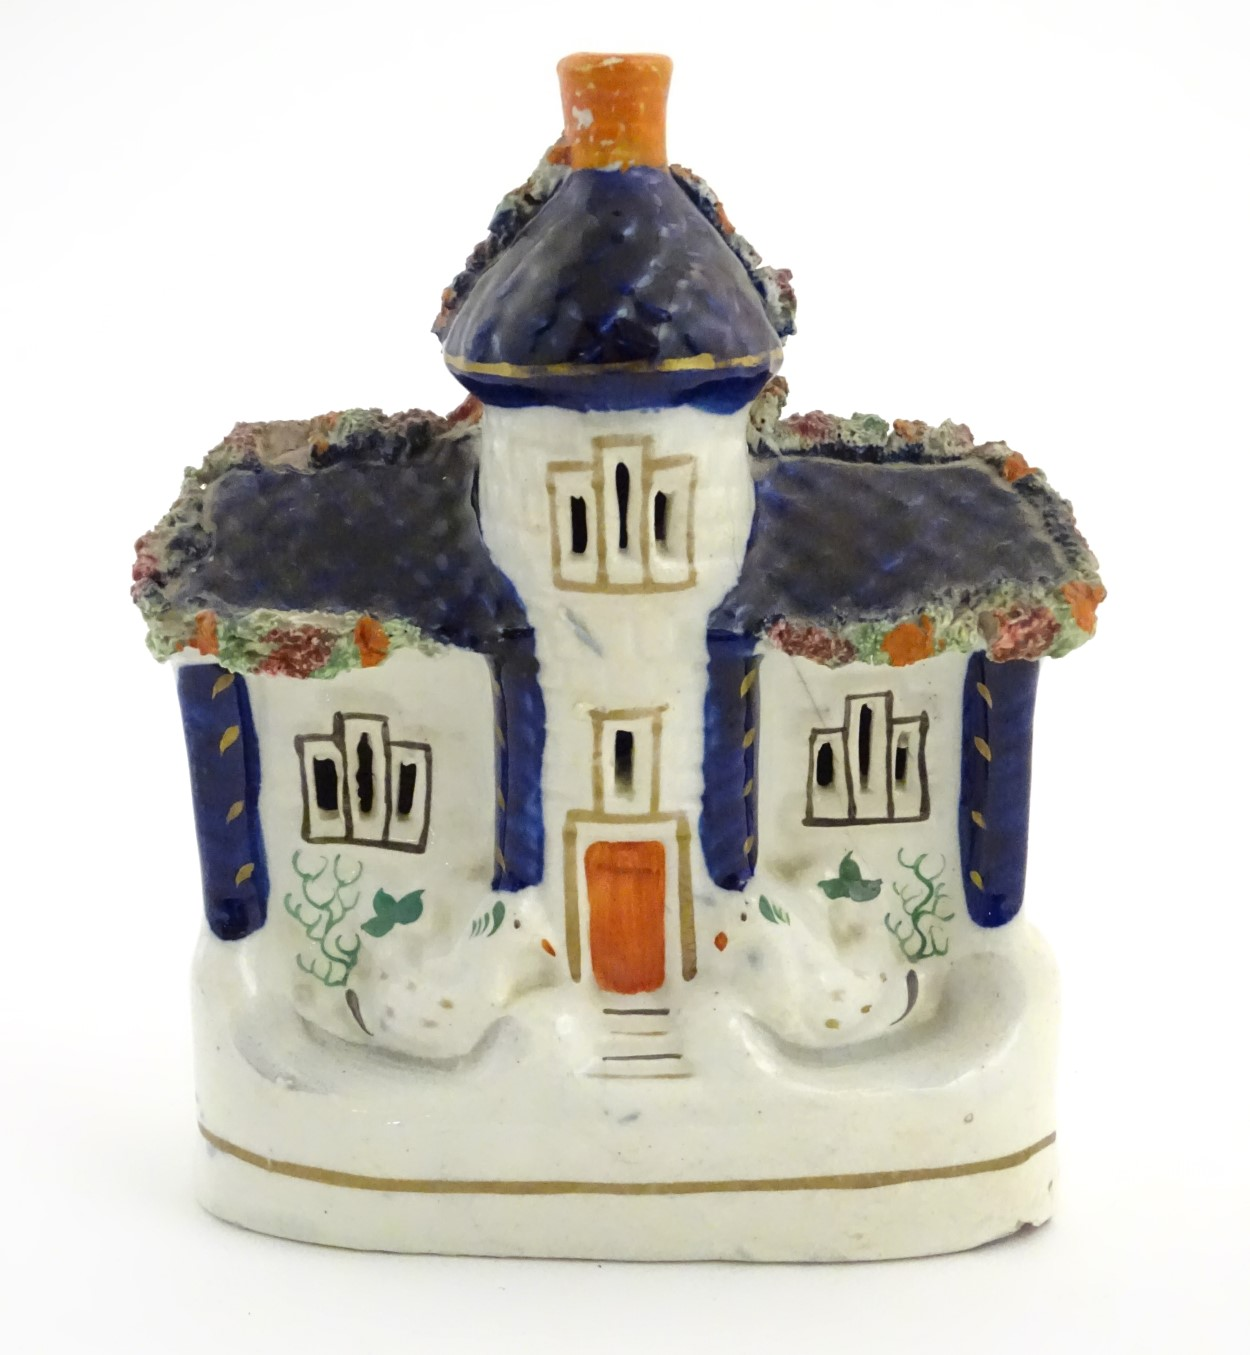 """Lot 48 - A Staffordshire pottery model of a flat back house. Approx. 6 1/2"""" tall x 4 1/2"""" wide."""